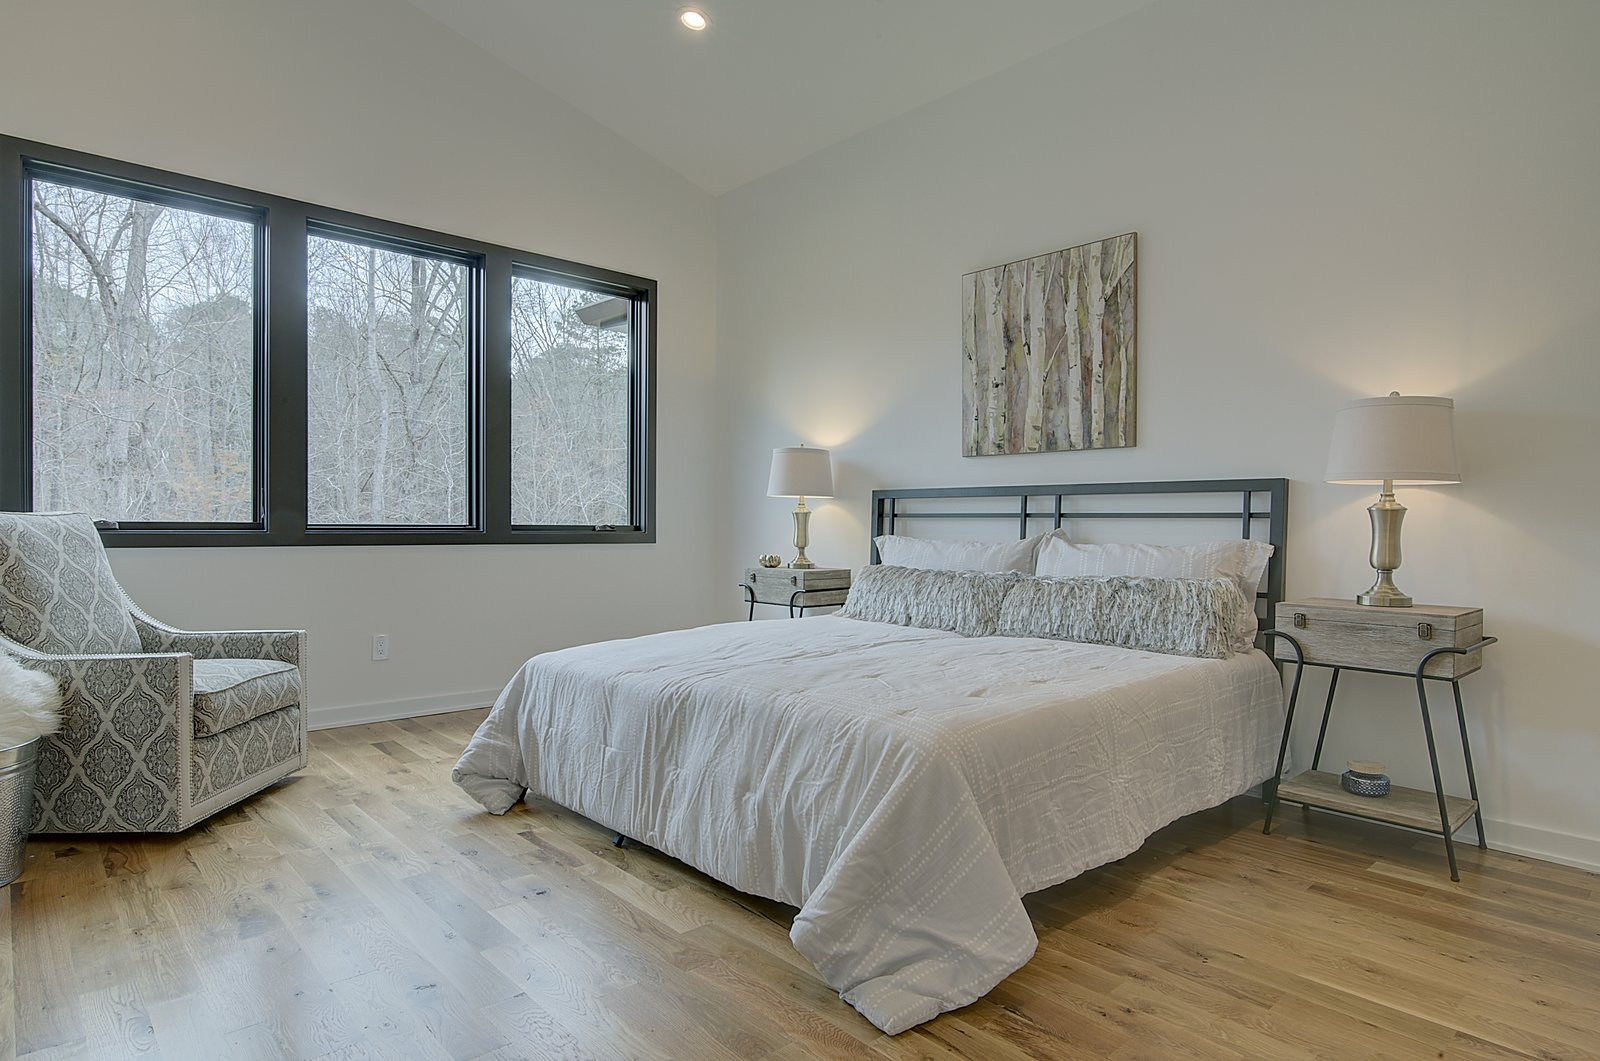 Bedroom, Night Stands, Chair, Recessed Lighting, Bed, and Light Hardwood Floor Master Bedroom  House 23 by Zipper Architecture